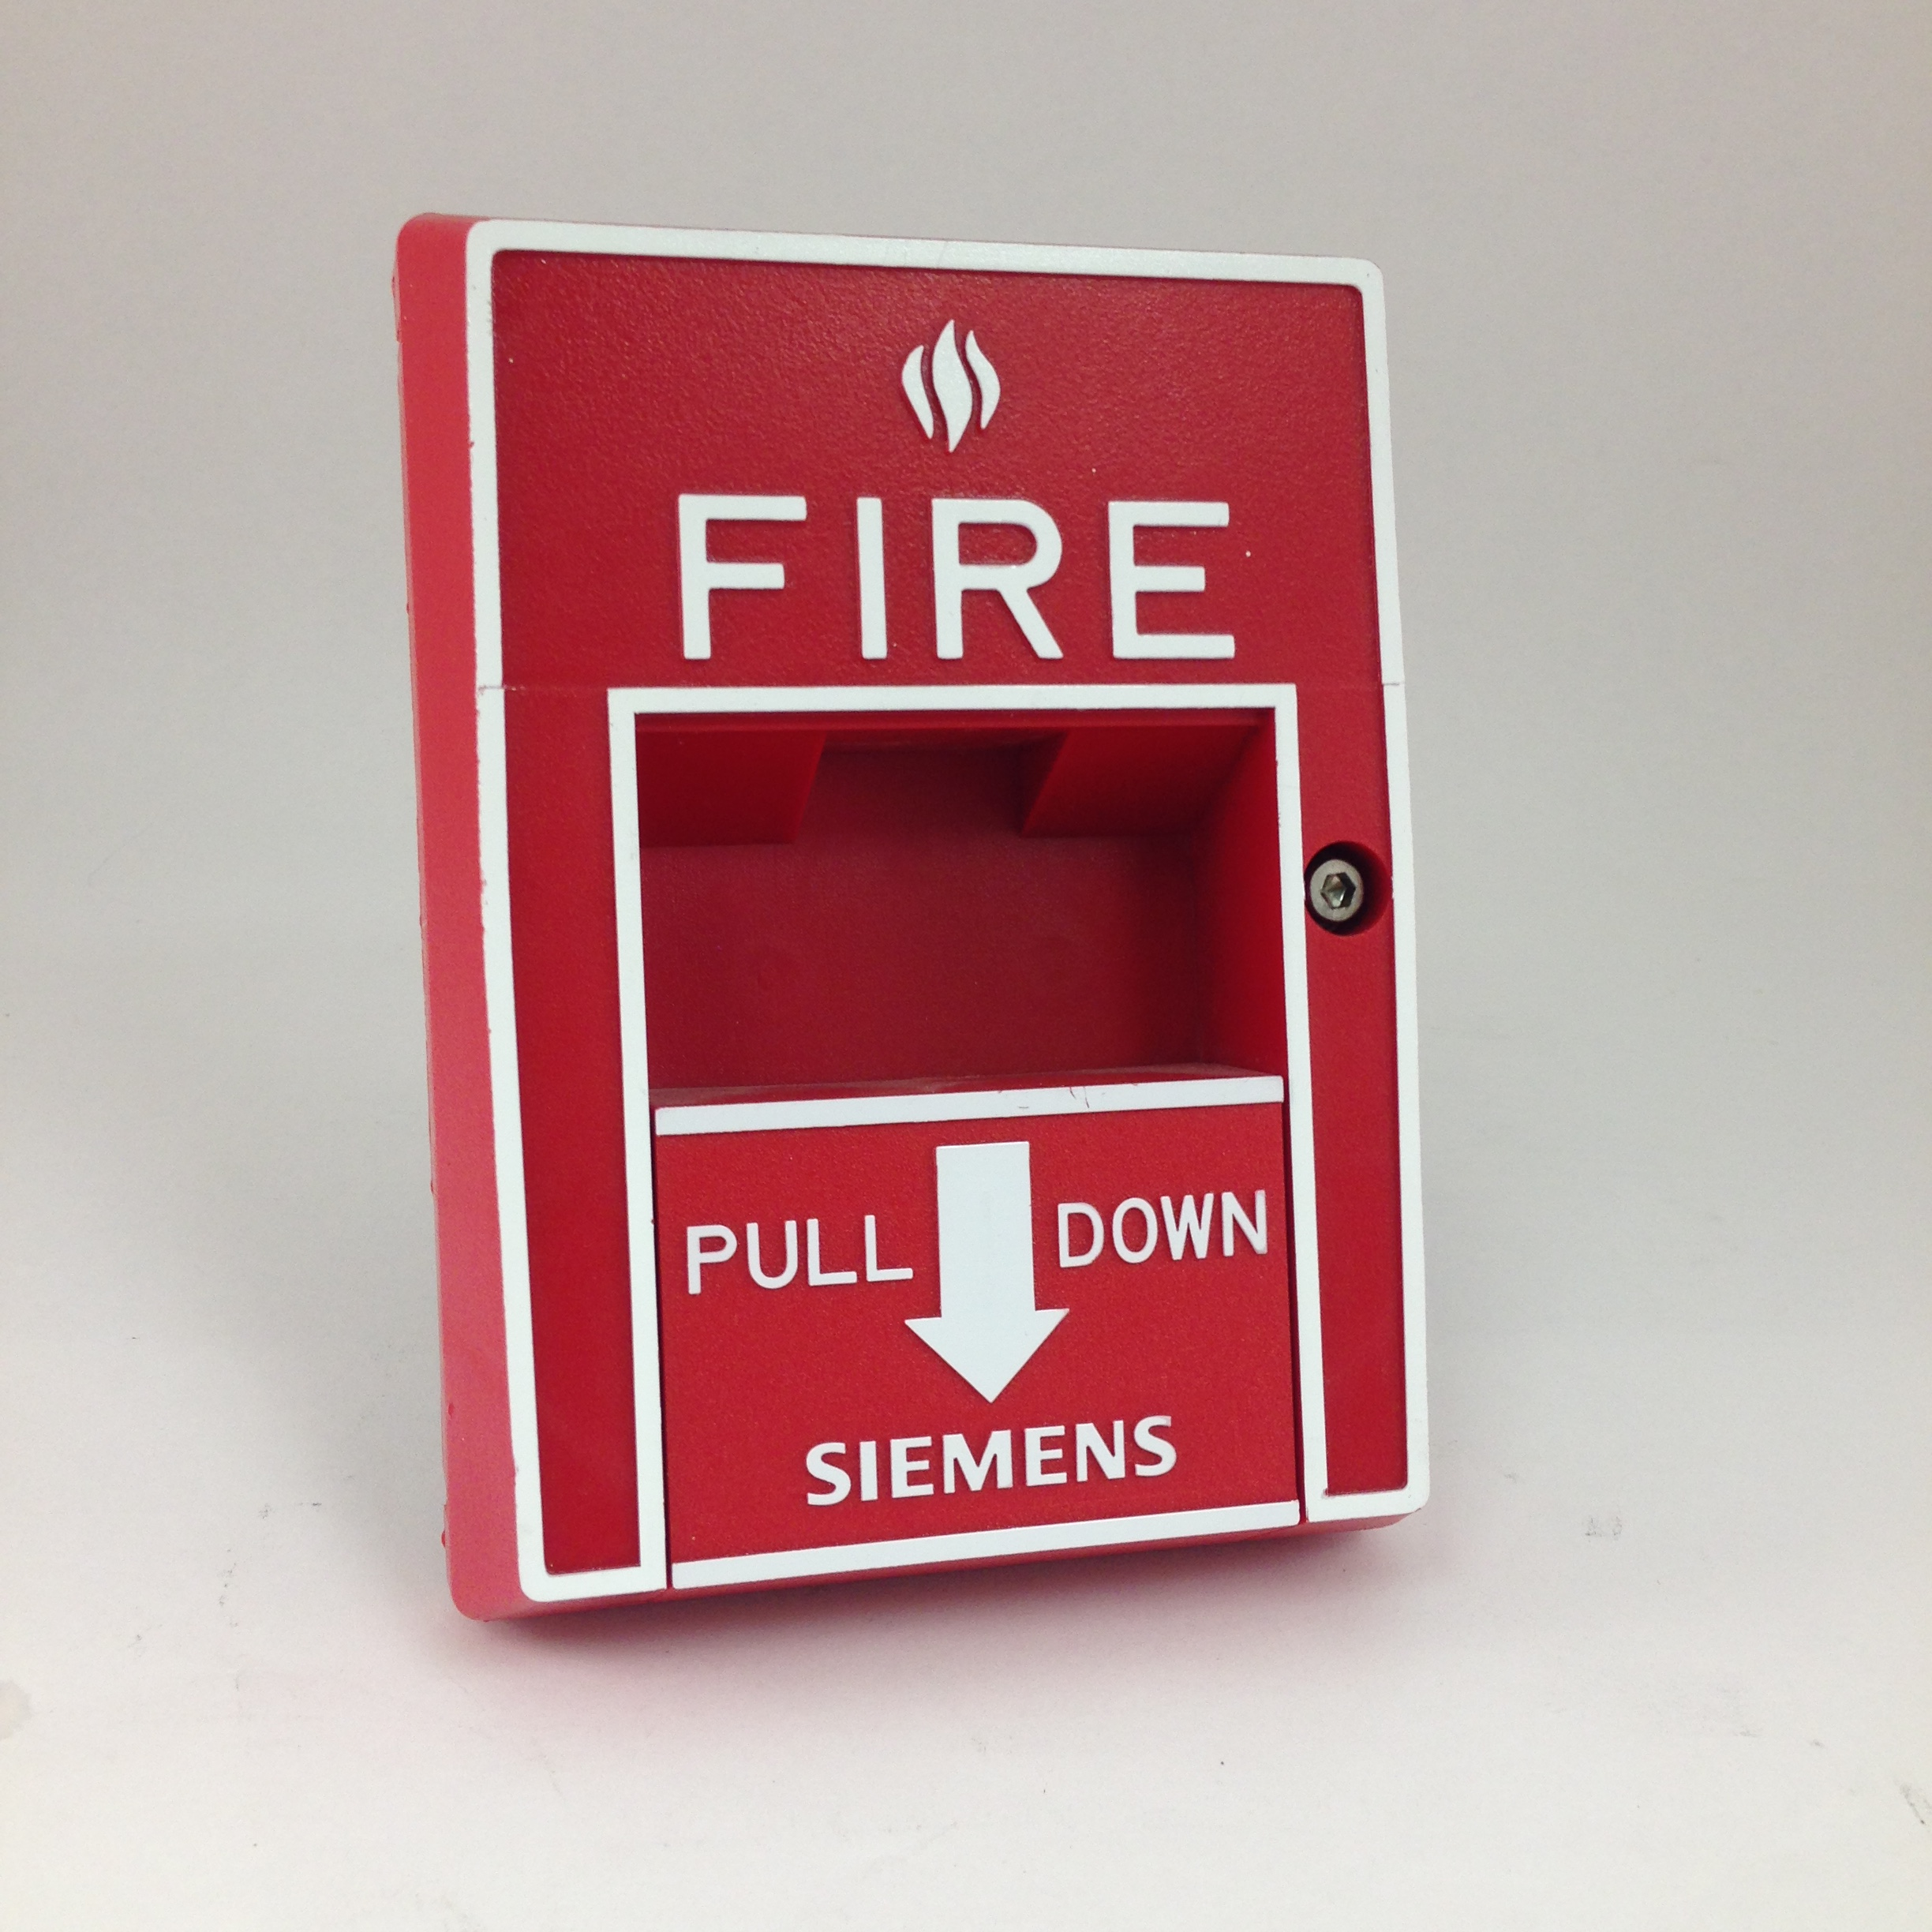 Siemens MSI-10B/-20B Manual Addressable Fire Alarm Pull Station